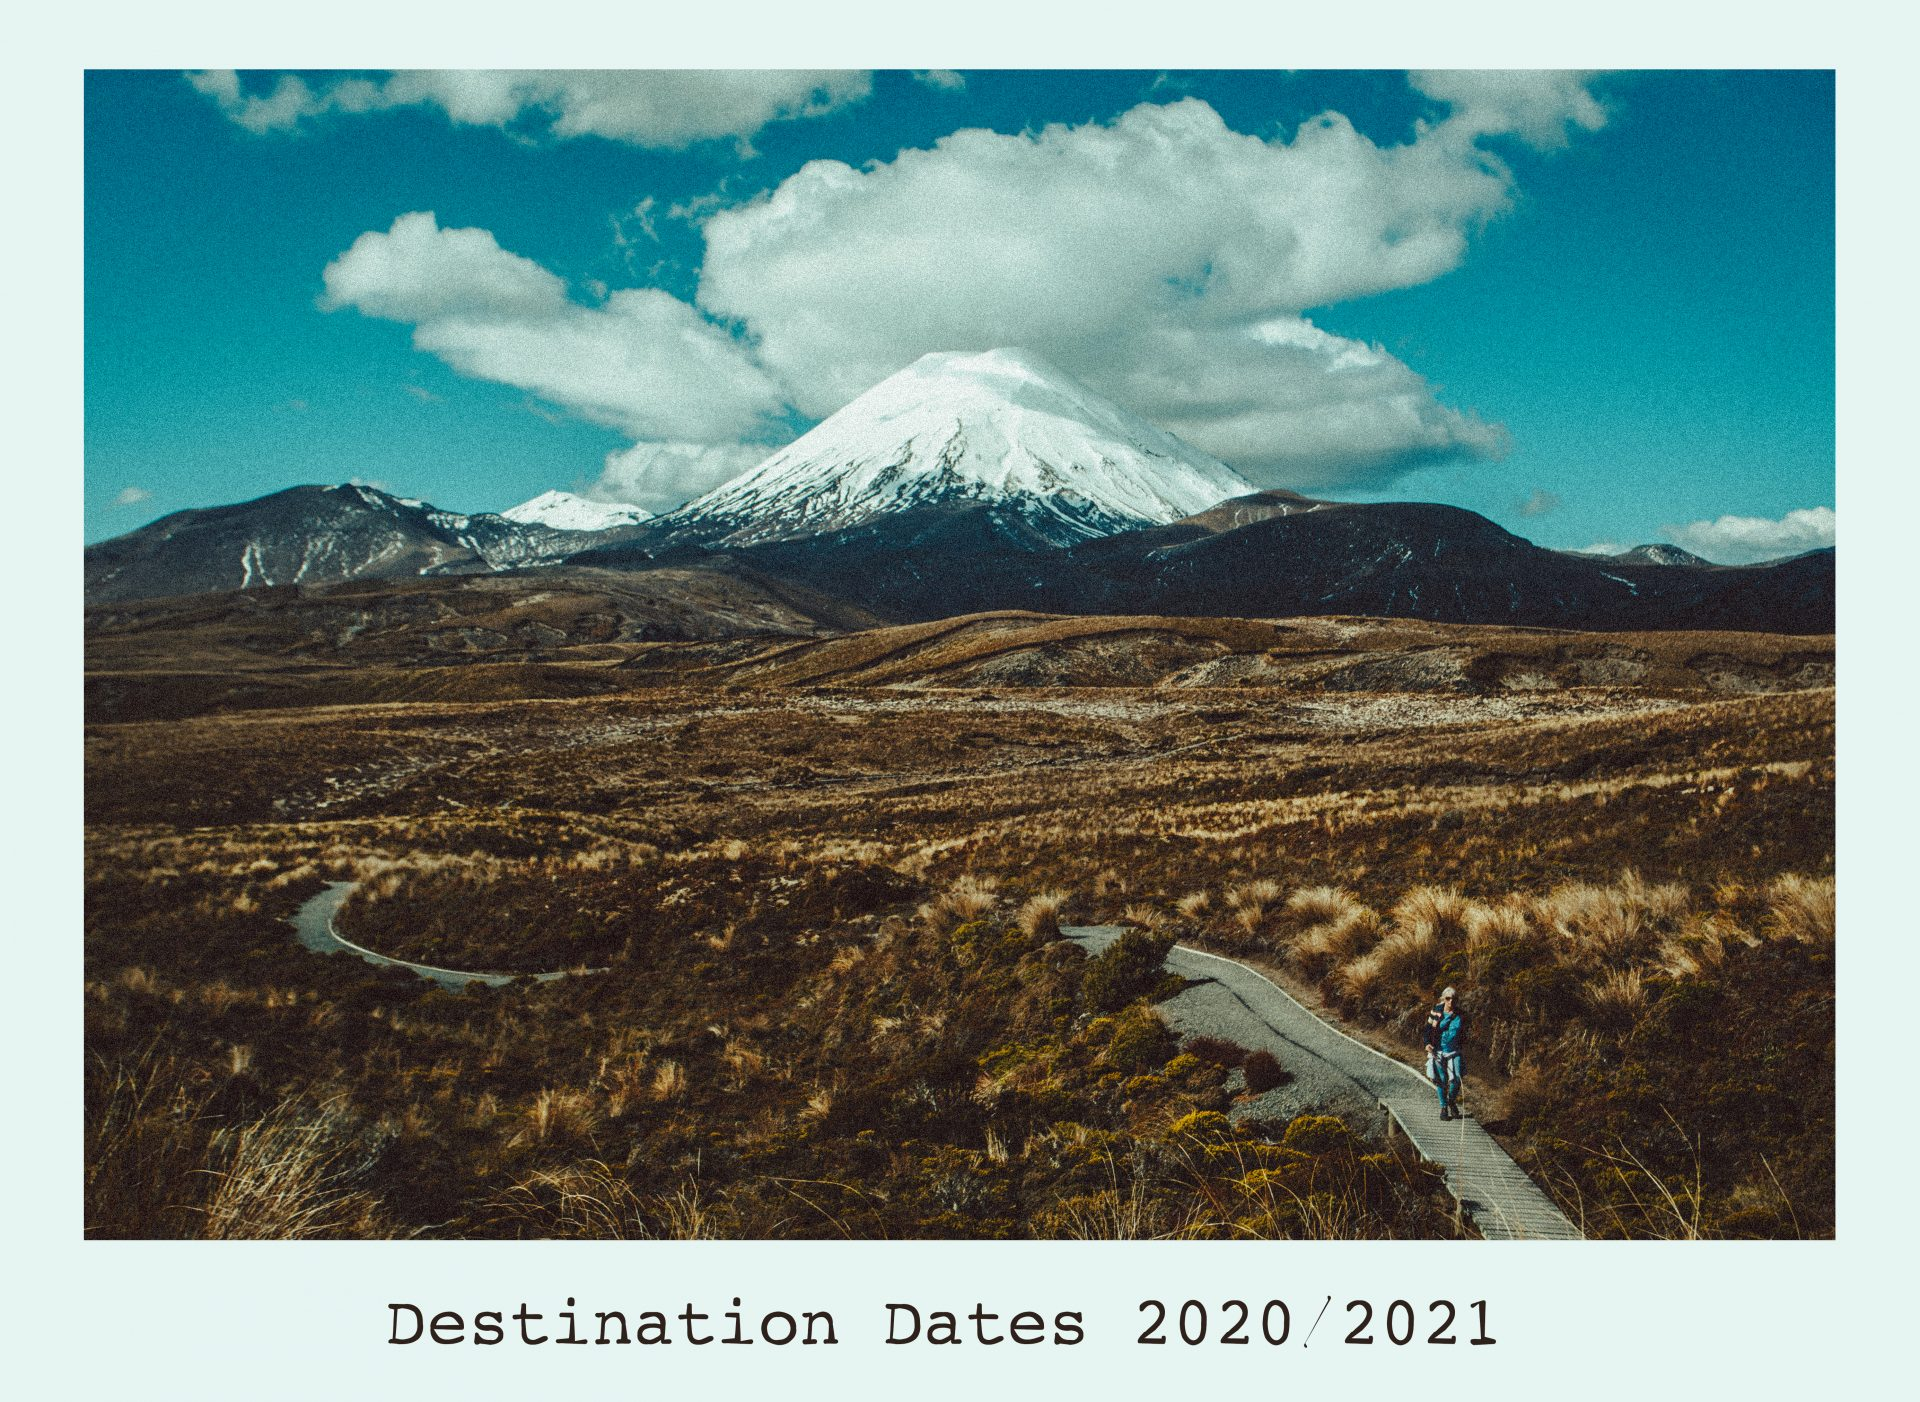 Travel Photography Destination and Dates. New Zealand hiking trail